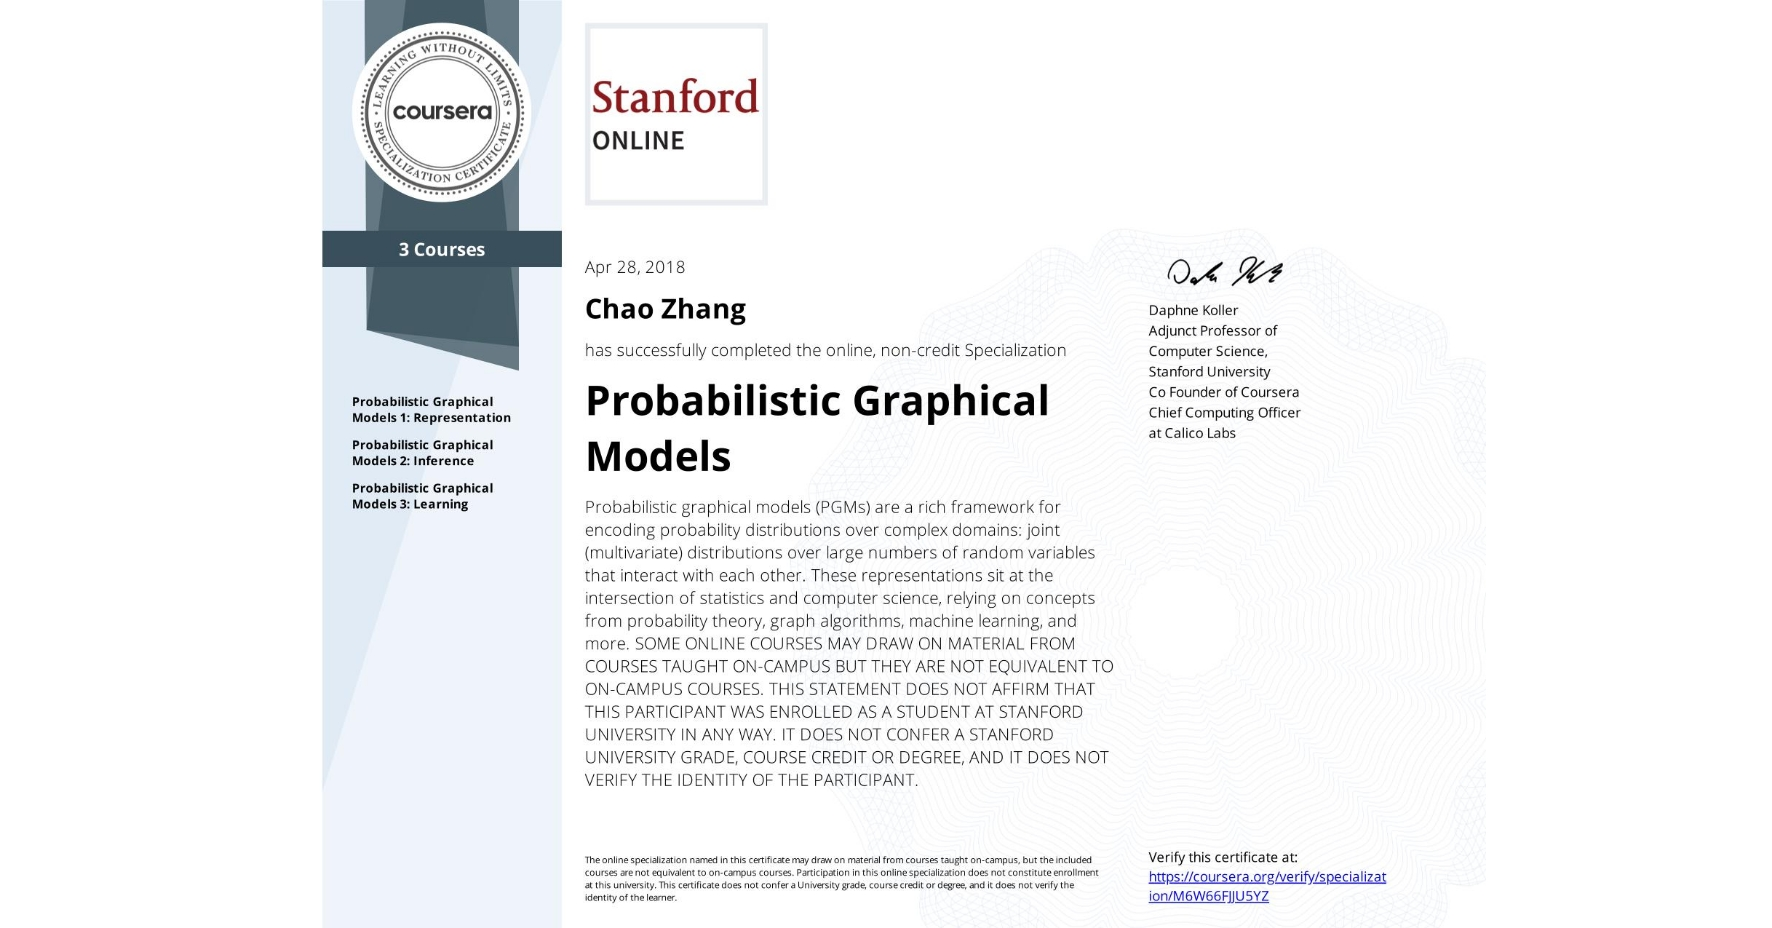 View certificate for Chao Zhang, Probabilistic Graphical Models , offered through Coursera. Probabilistic graphical models (PGMs) are a rich framework for encoding probability distributions over complex domains: joint (multivariate) distributions over large numbers of random variables that interact with each other. These representations sit at the intersection of statistics and computer science, relying on concepts from probability theory, graph algorithms, machine learning, and more.  <p> SOME ONLINE COURSES MAY DRAW ON MATERIAL FROM COURSES TAUGHT ON-CAMPUS BUT THEY ARE NOT EQUIVALENT TO ON-CAMPUS COURSES. THIS STATEMENT DOES NOT AFFIRM THAT THIS PARTICIPANT WAS ENROLLED AS A STUDENT AT STANFORD UNIVERSITY IN ANY WAY. IT DOES NOT CONFER A STANFORD UNIVERSITY GRADE, COURSE CREDIT OR DEGREE, AND IT DOES NOT VERIFY THE IDENTITY OF THE PARTICIPANT.</p>